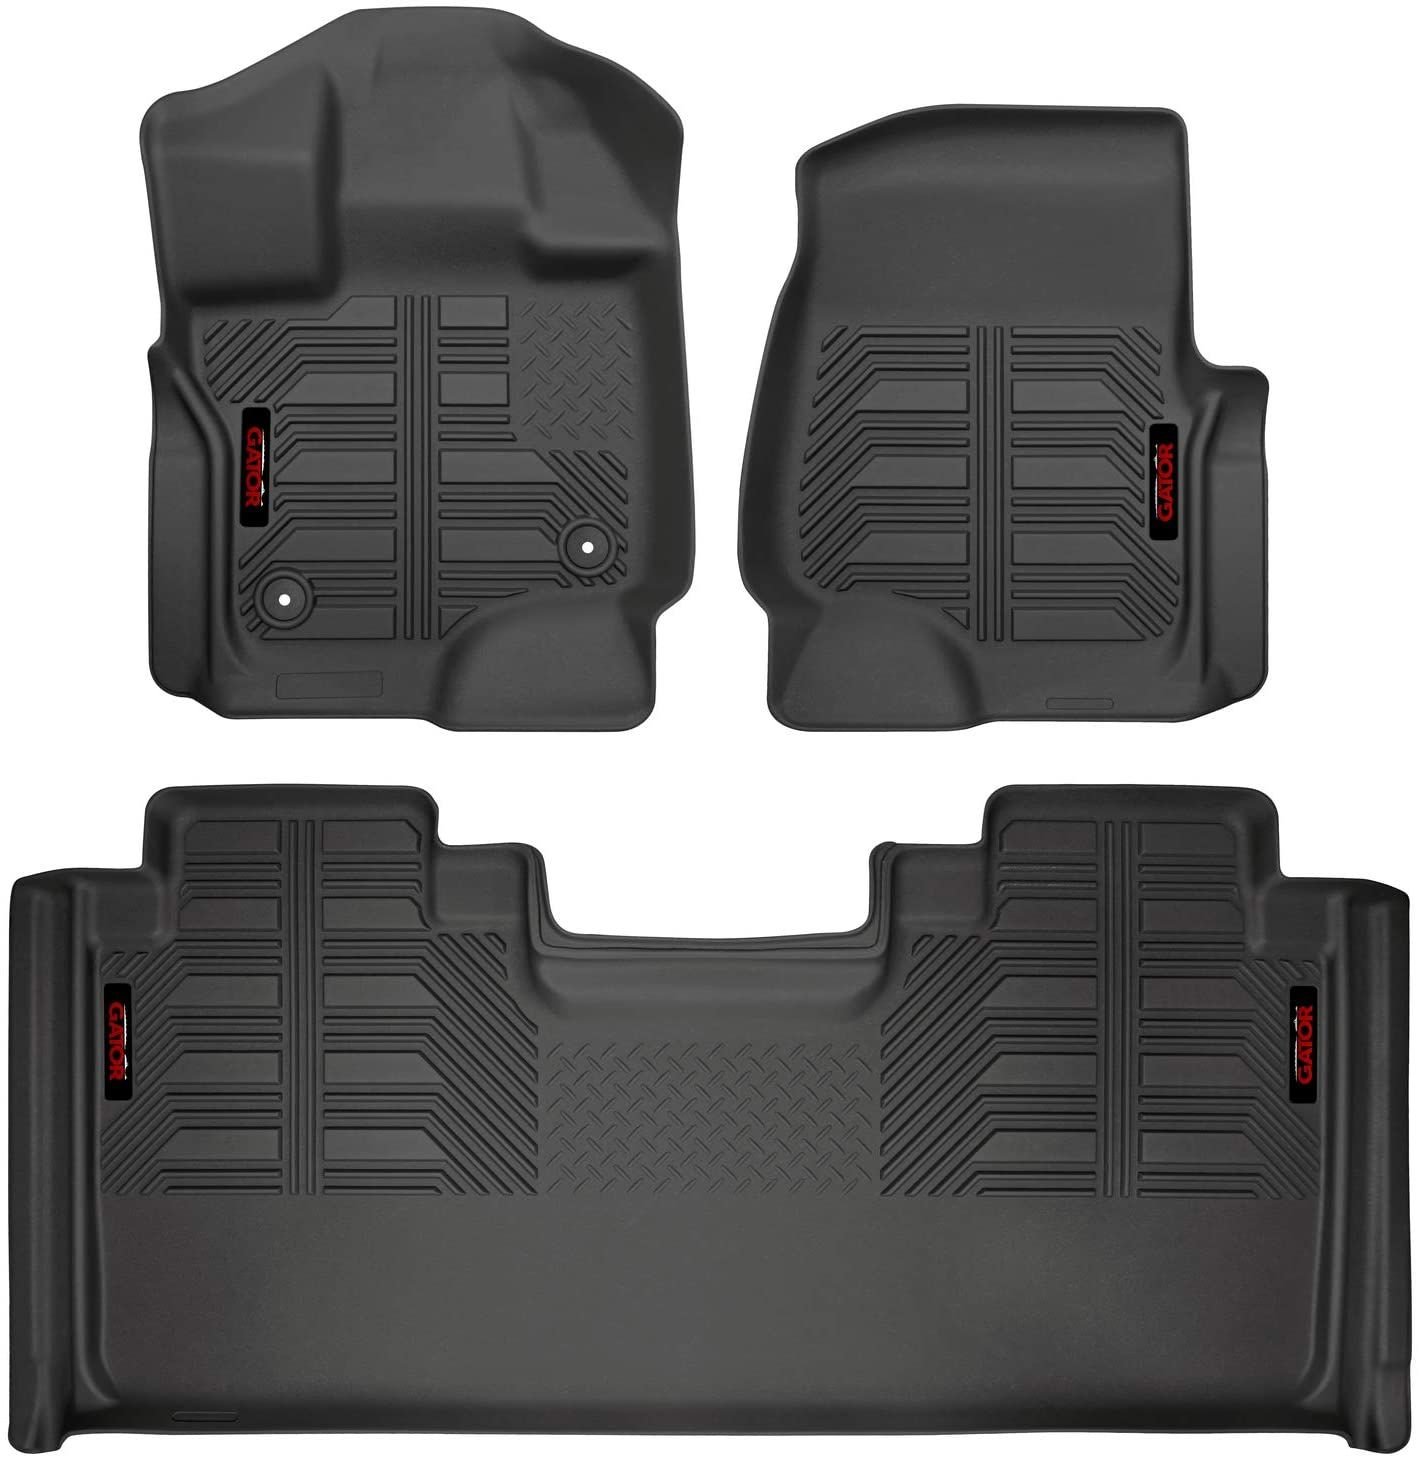 Gator Accessories 79610 Black Front And 2nd Seat Floor Liners Fits 2015 20 Ford F 150 Supercab In 2020 Ford F150 Floor Liners Ford